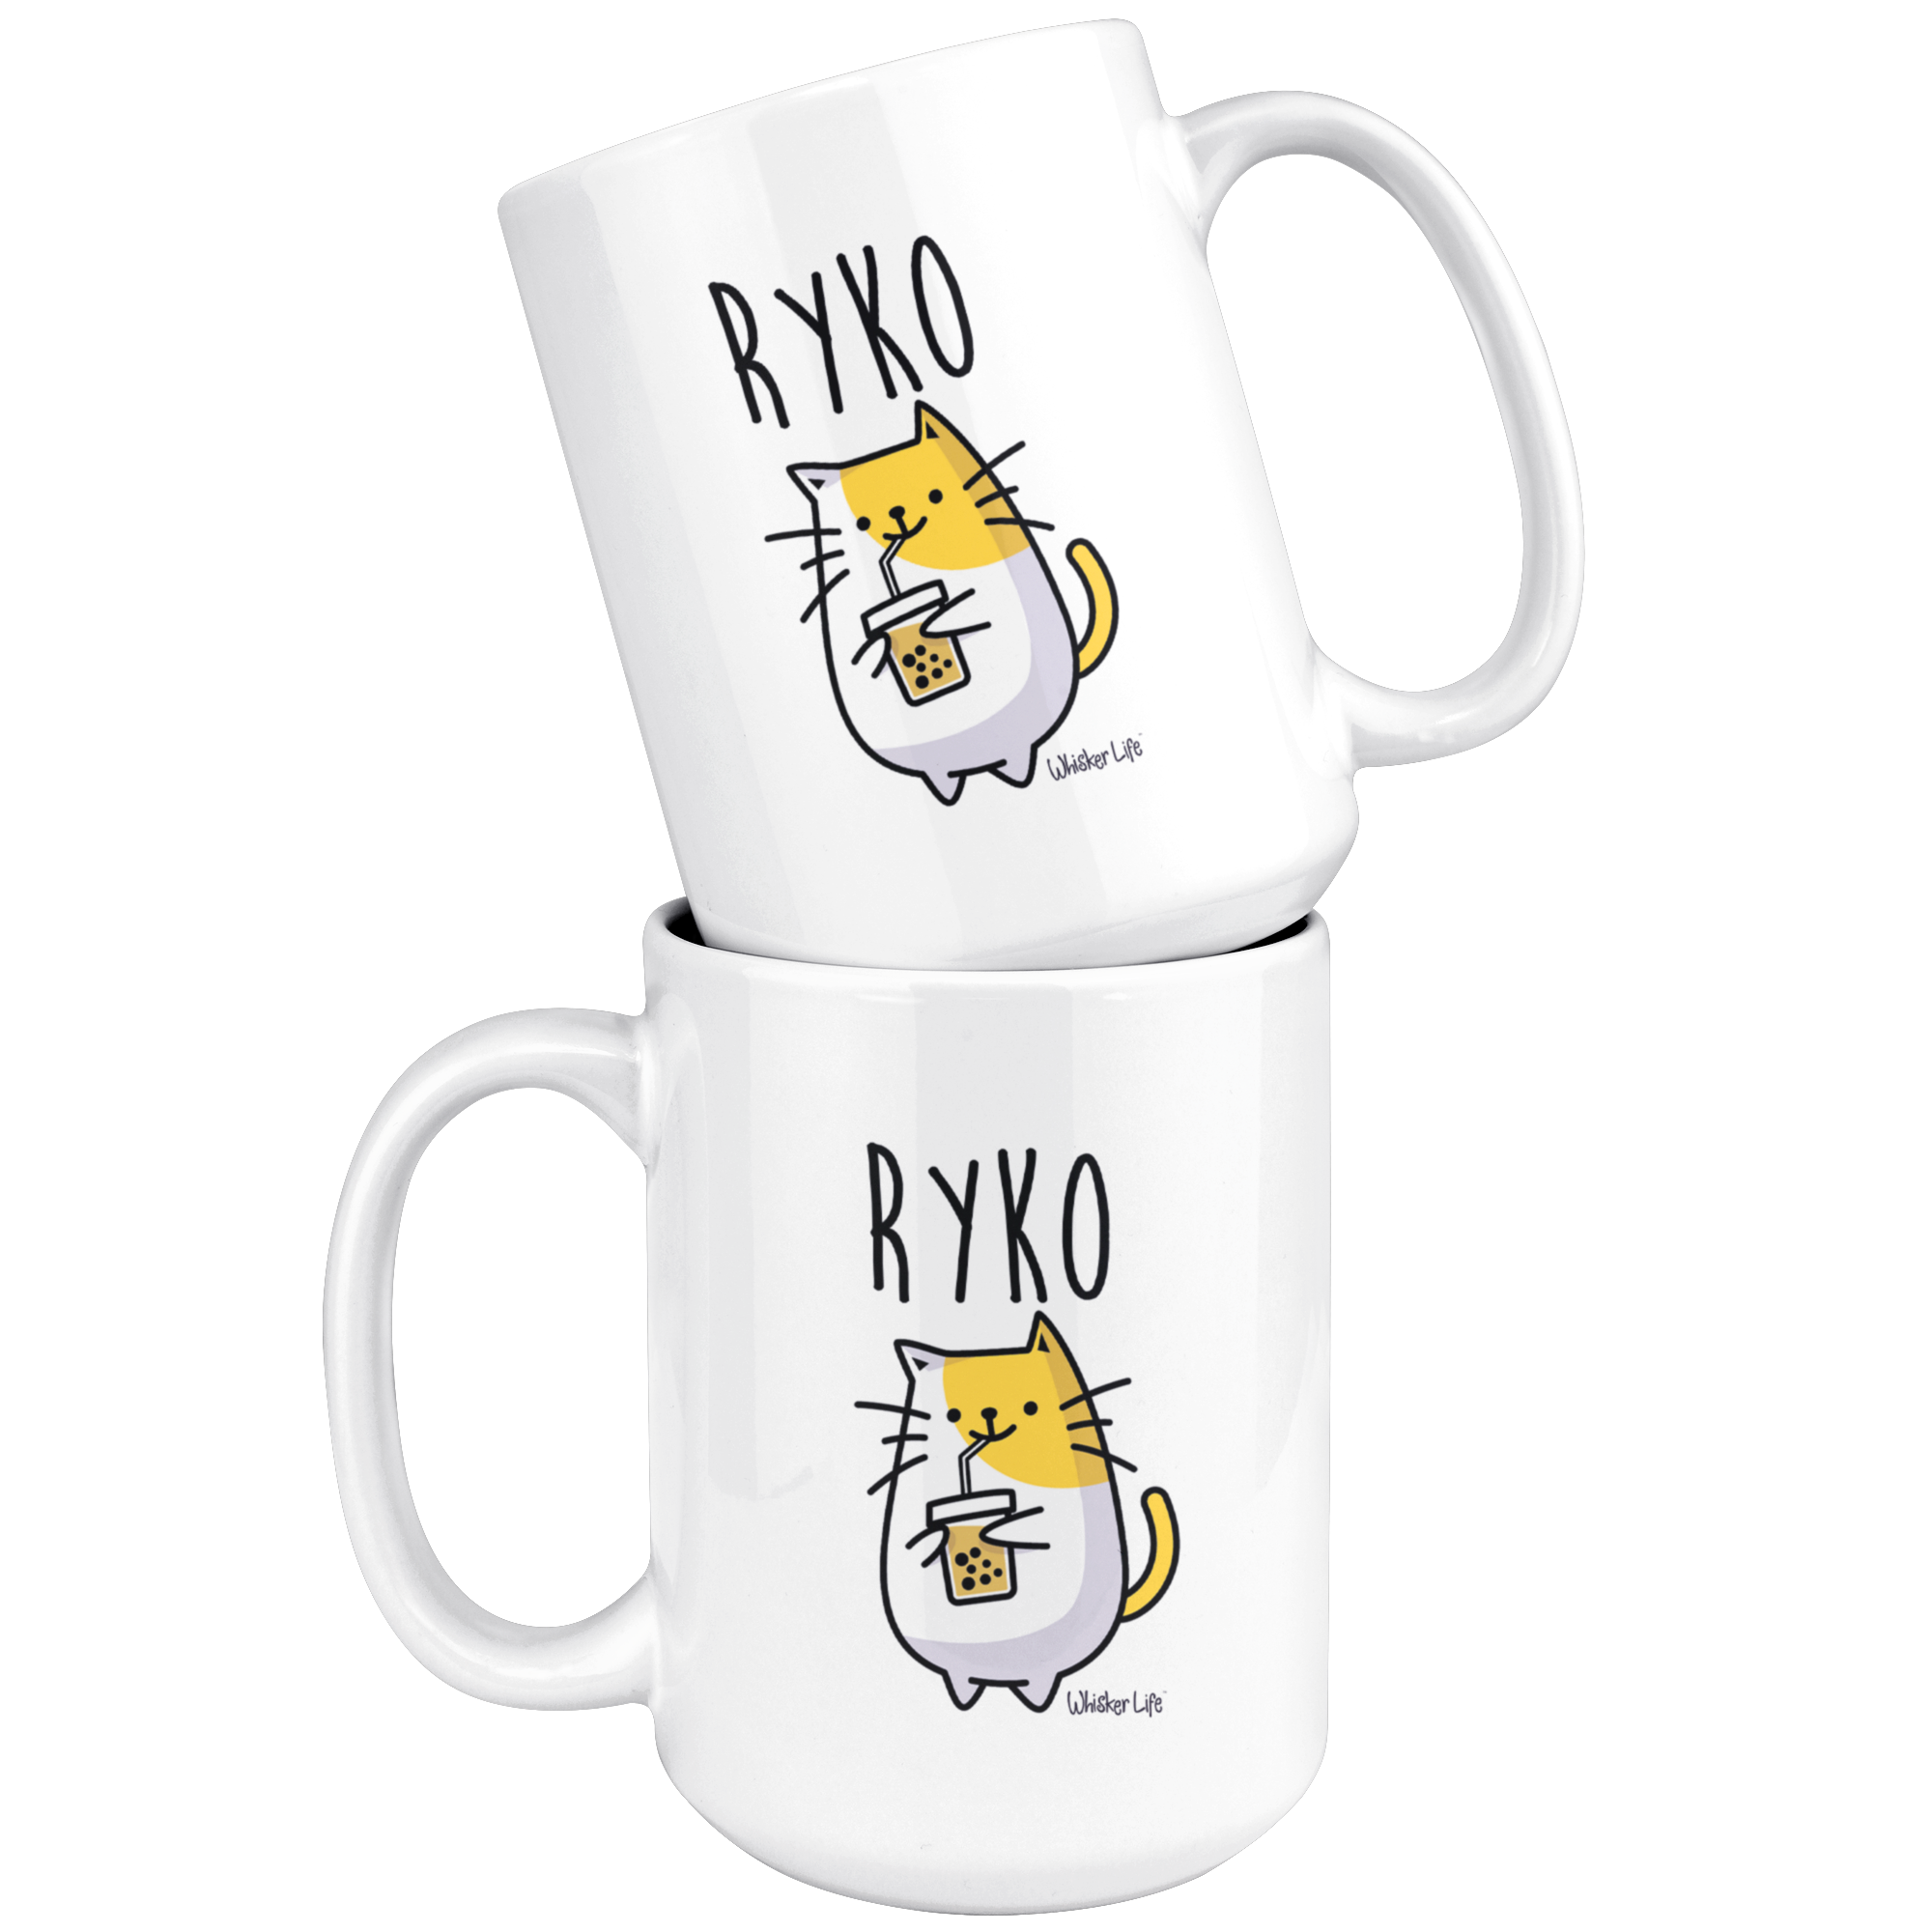 Ryko Drinking Coffee - Large 15oz Coffee Mug